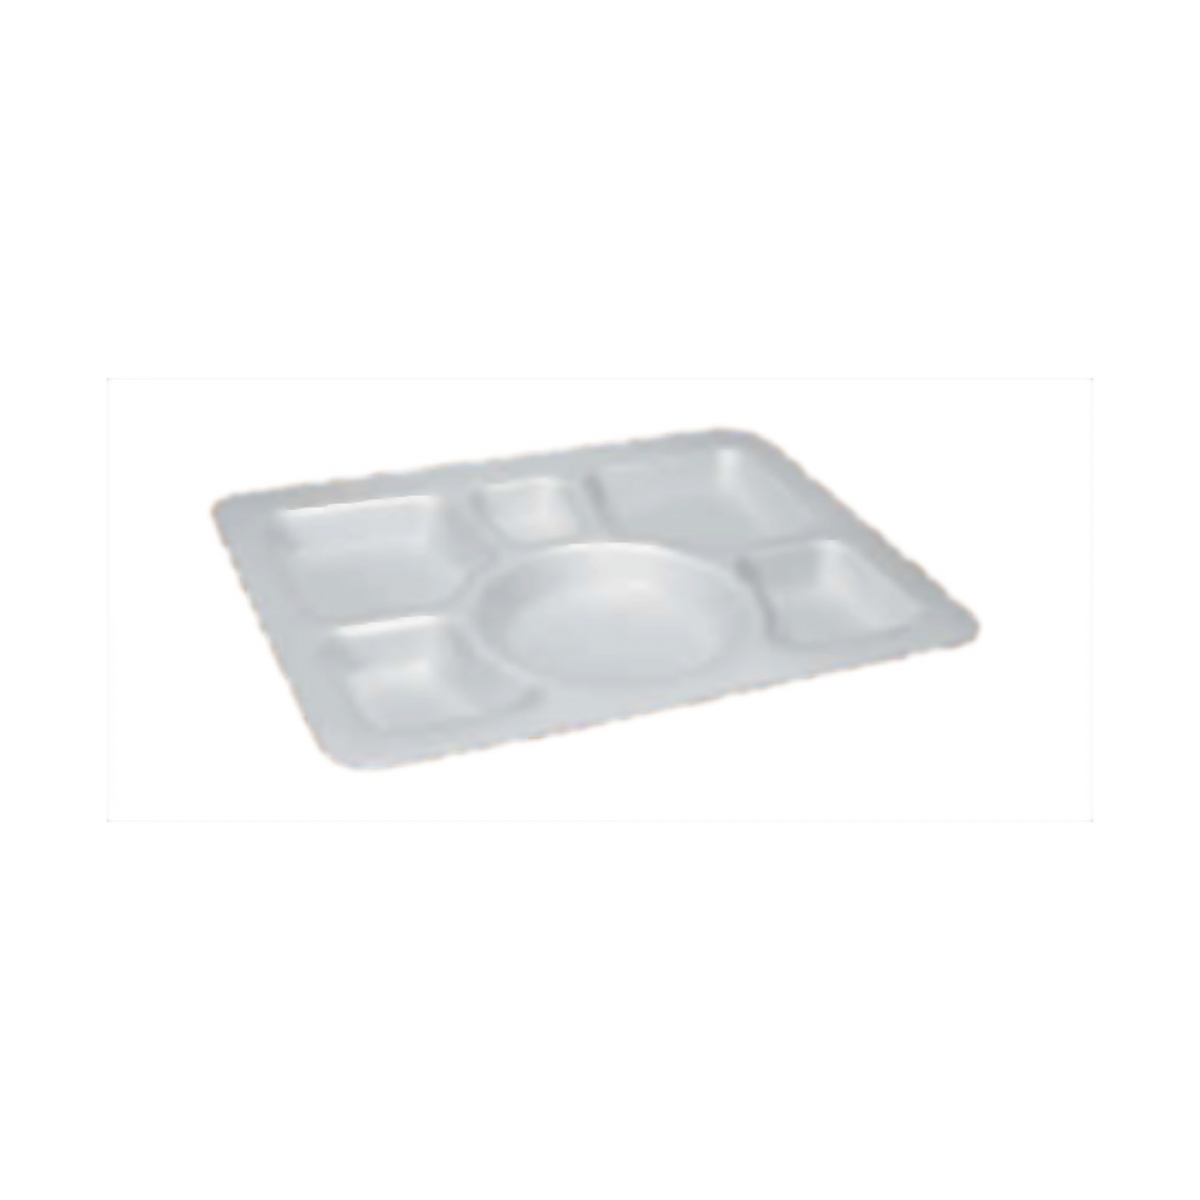 foam meal tray 6 sec / 300*307*30